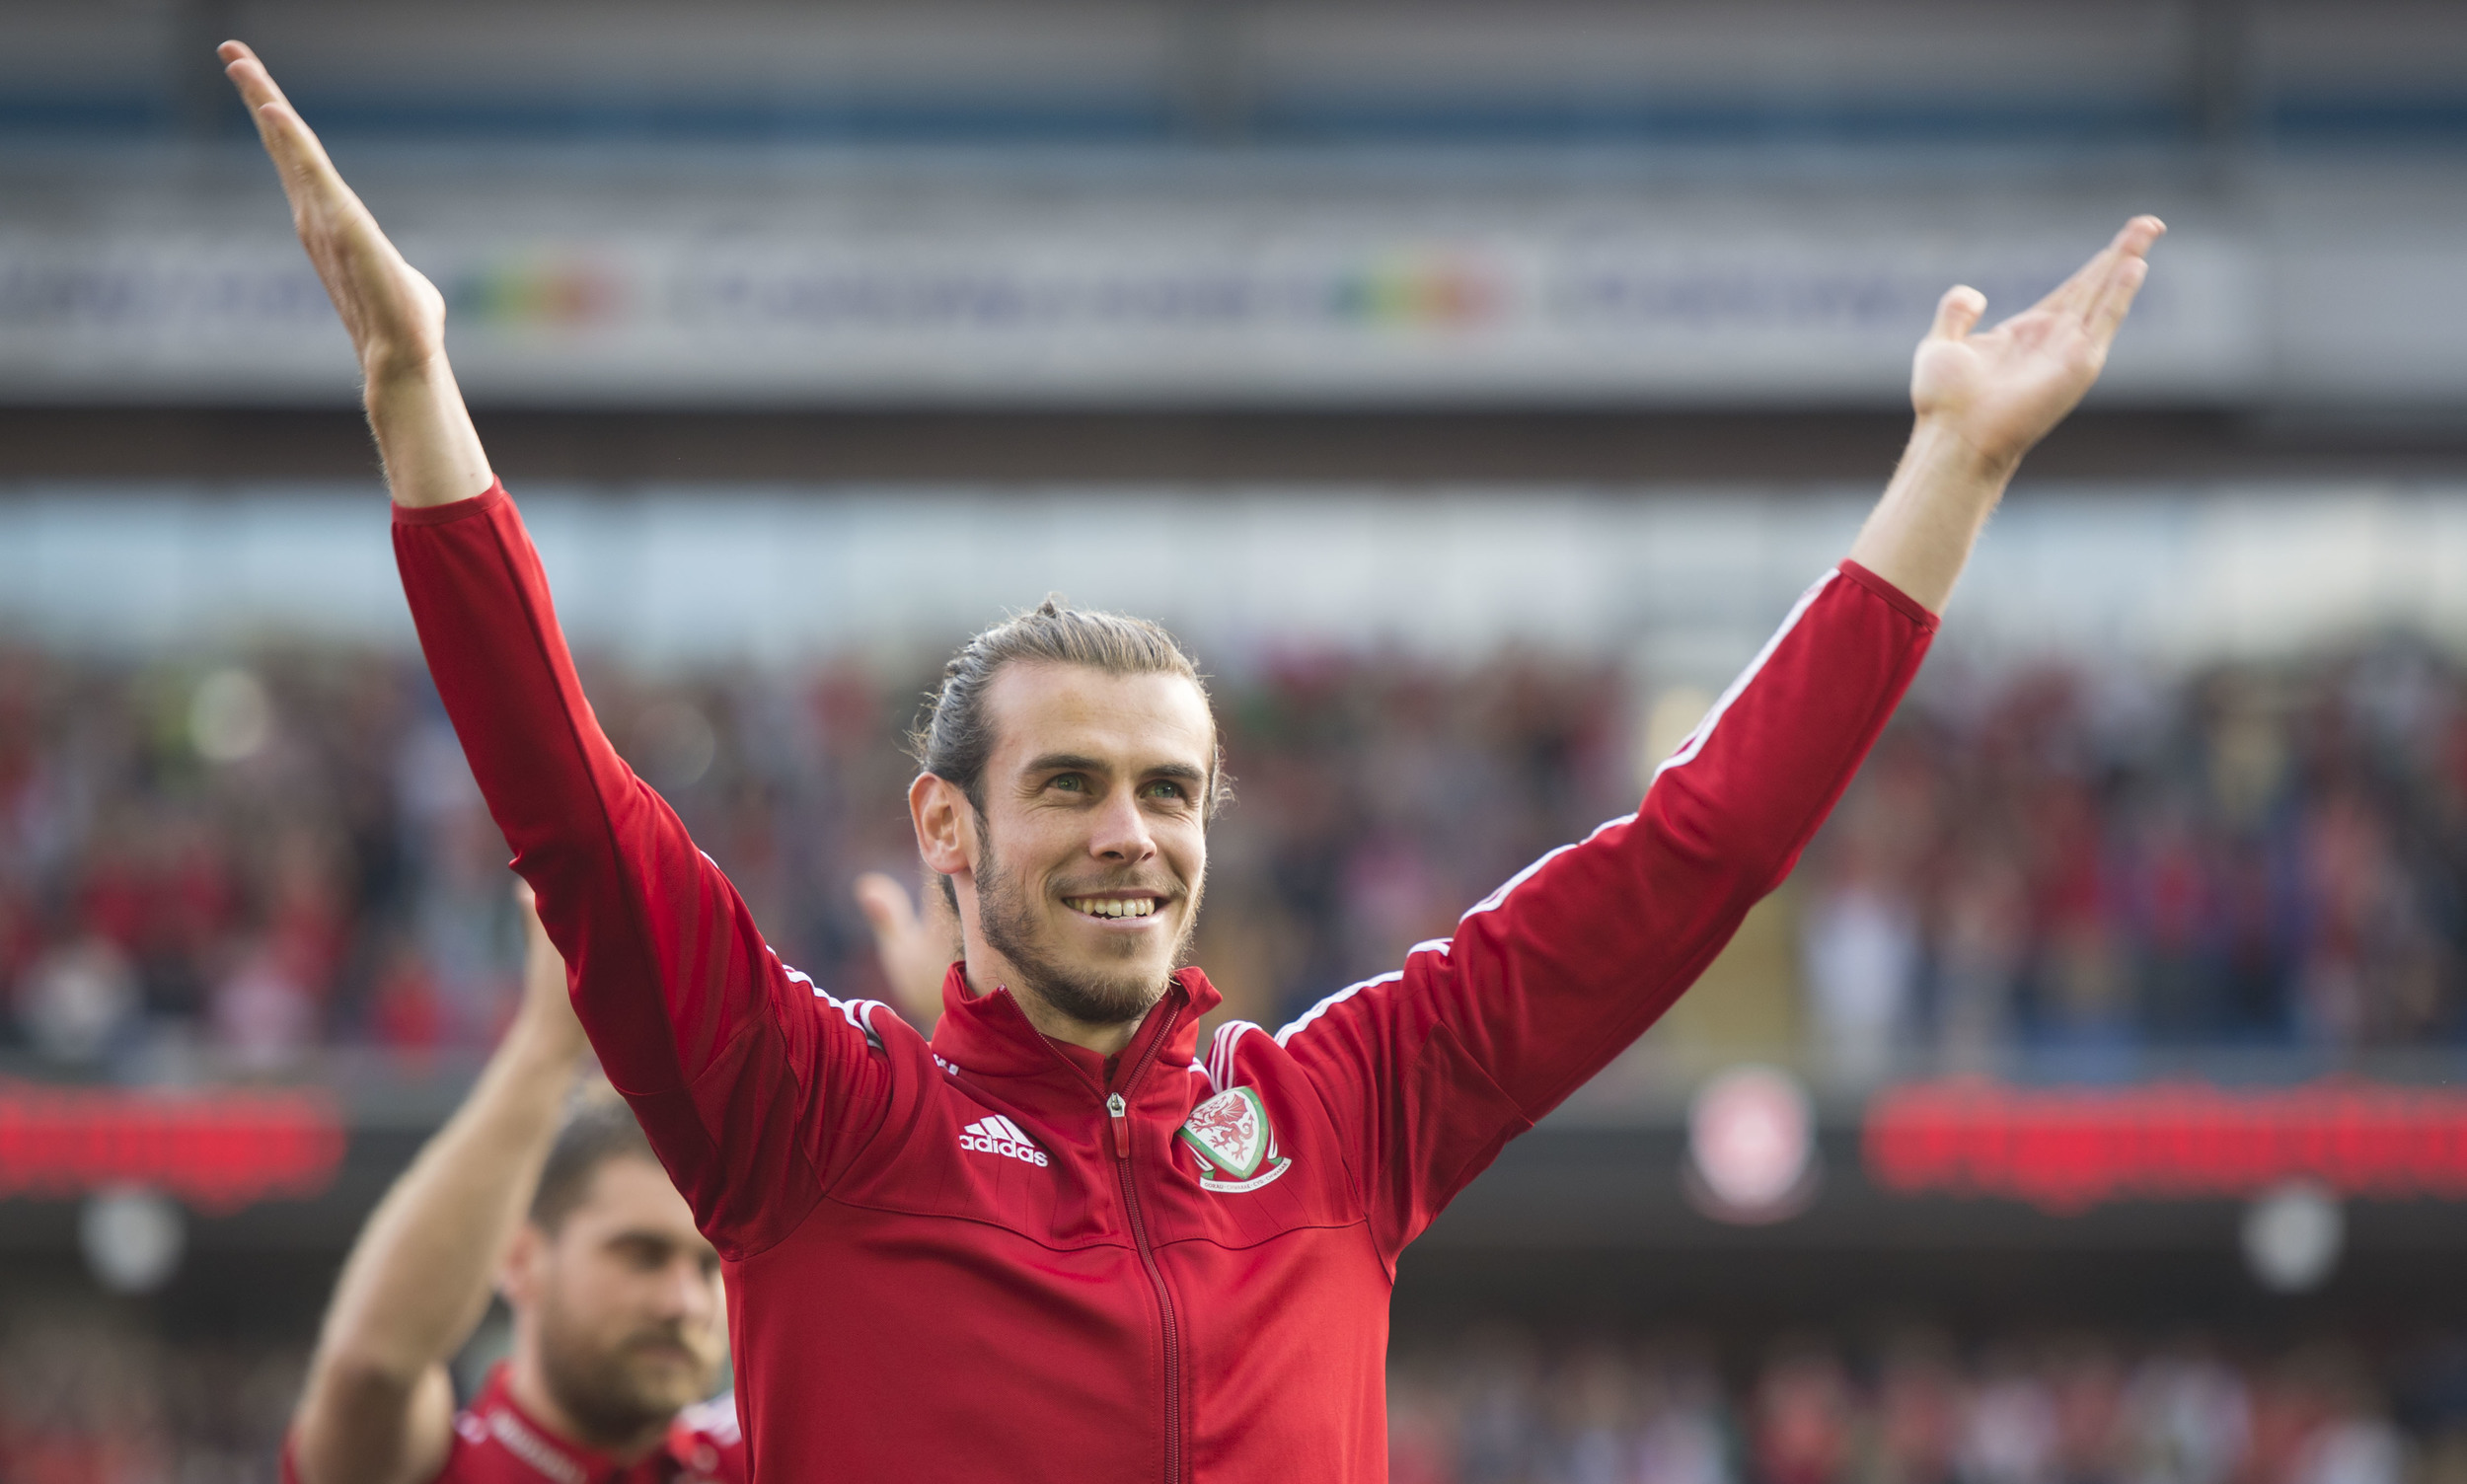 Homecoming event for the Euro 2016 Wales football team at the Cardiff City Stadium in Cardiff, South Wales. (Photo by Matthew Horwood)